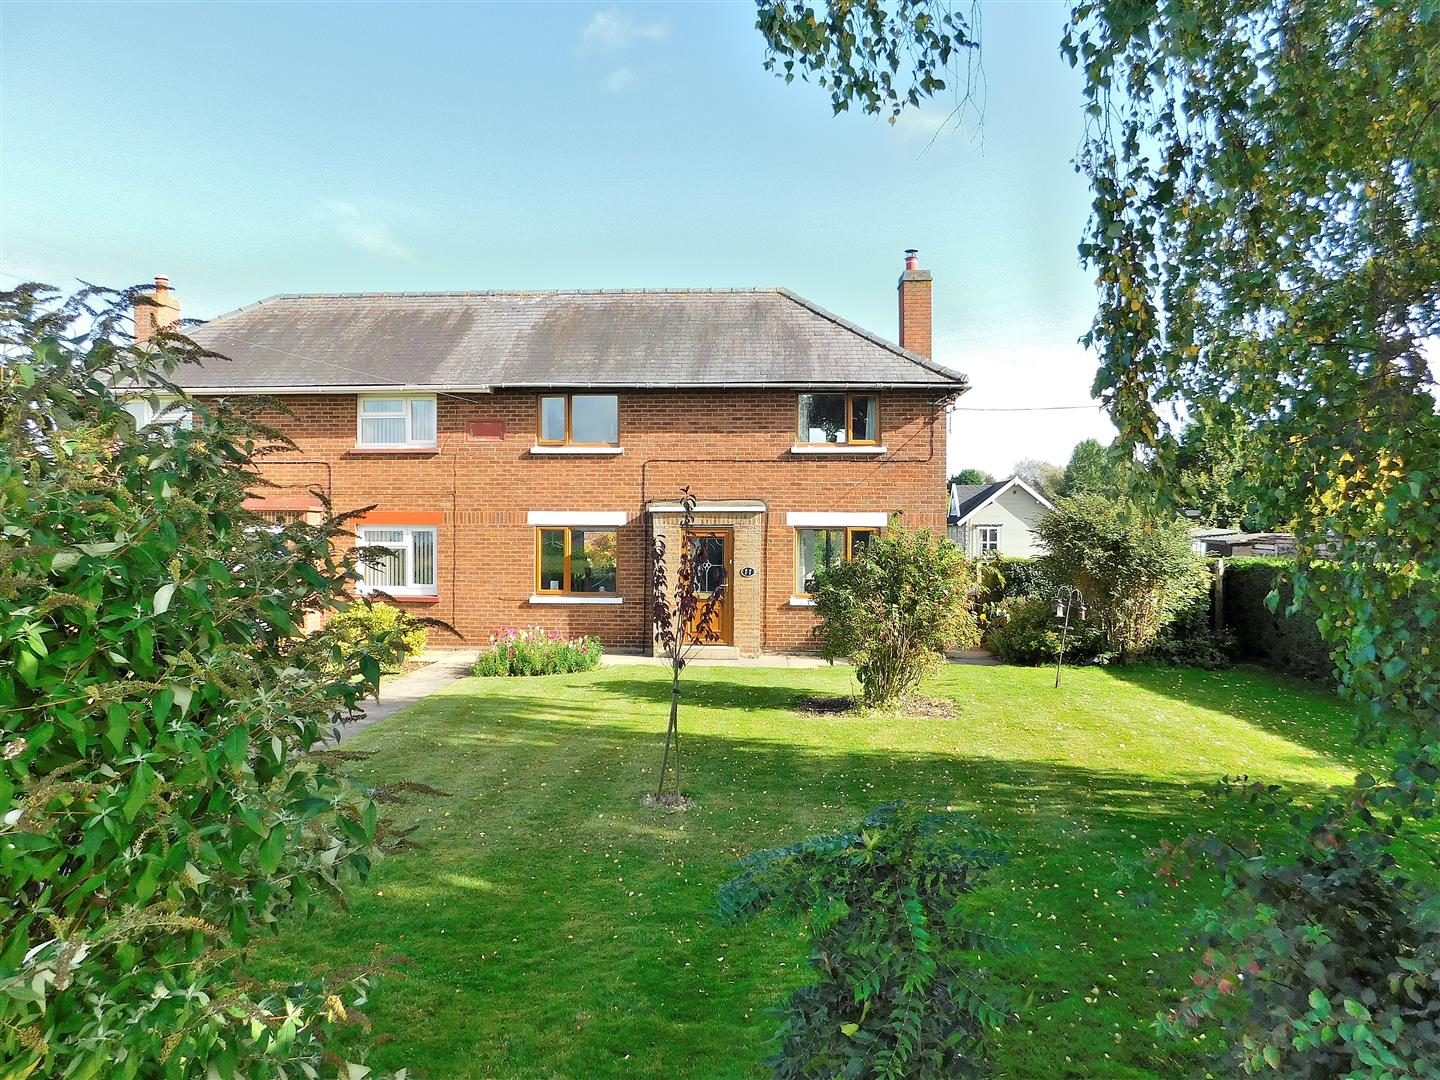 3 bed semi-detached house for sale in Tower Road, King's Lynn, PE34